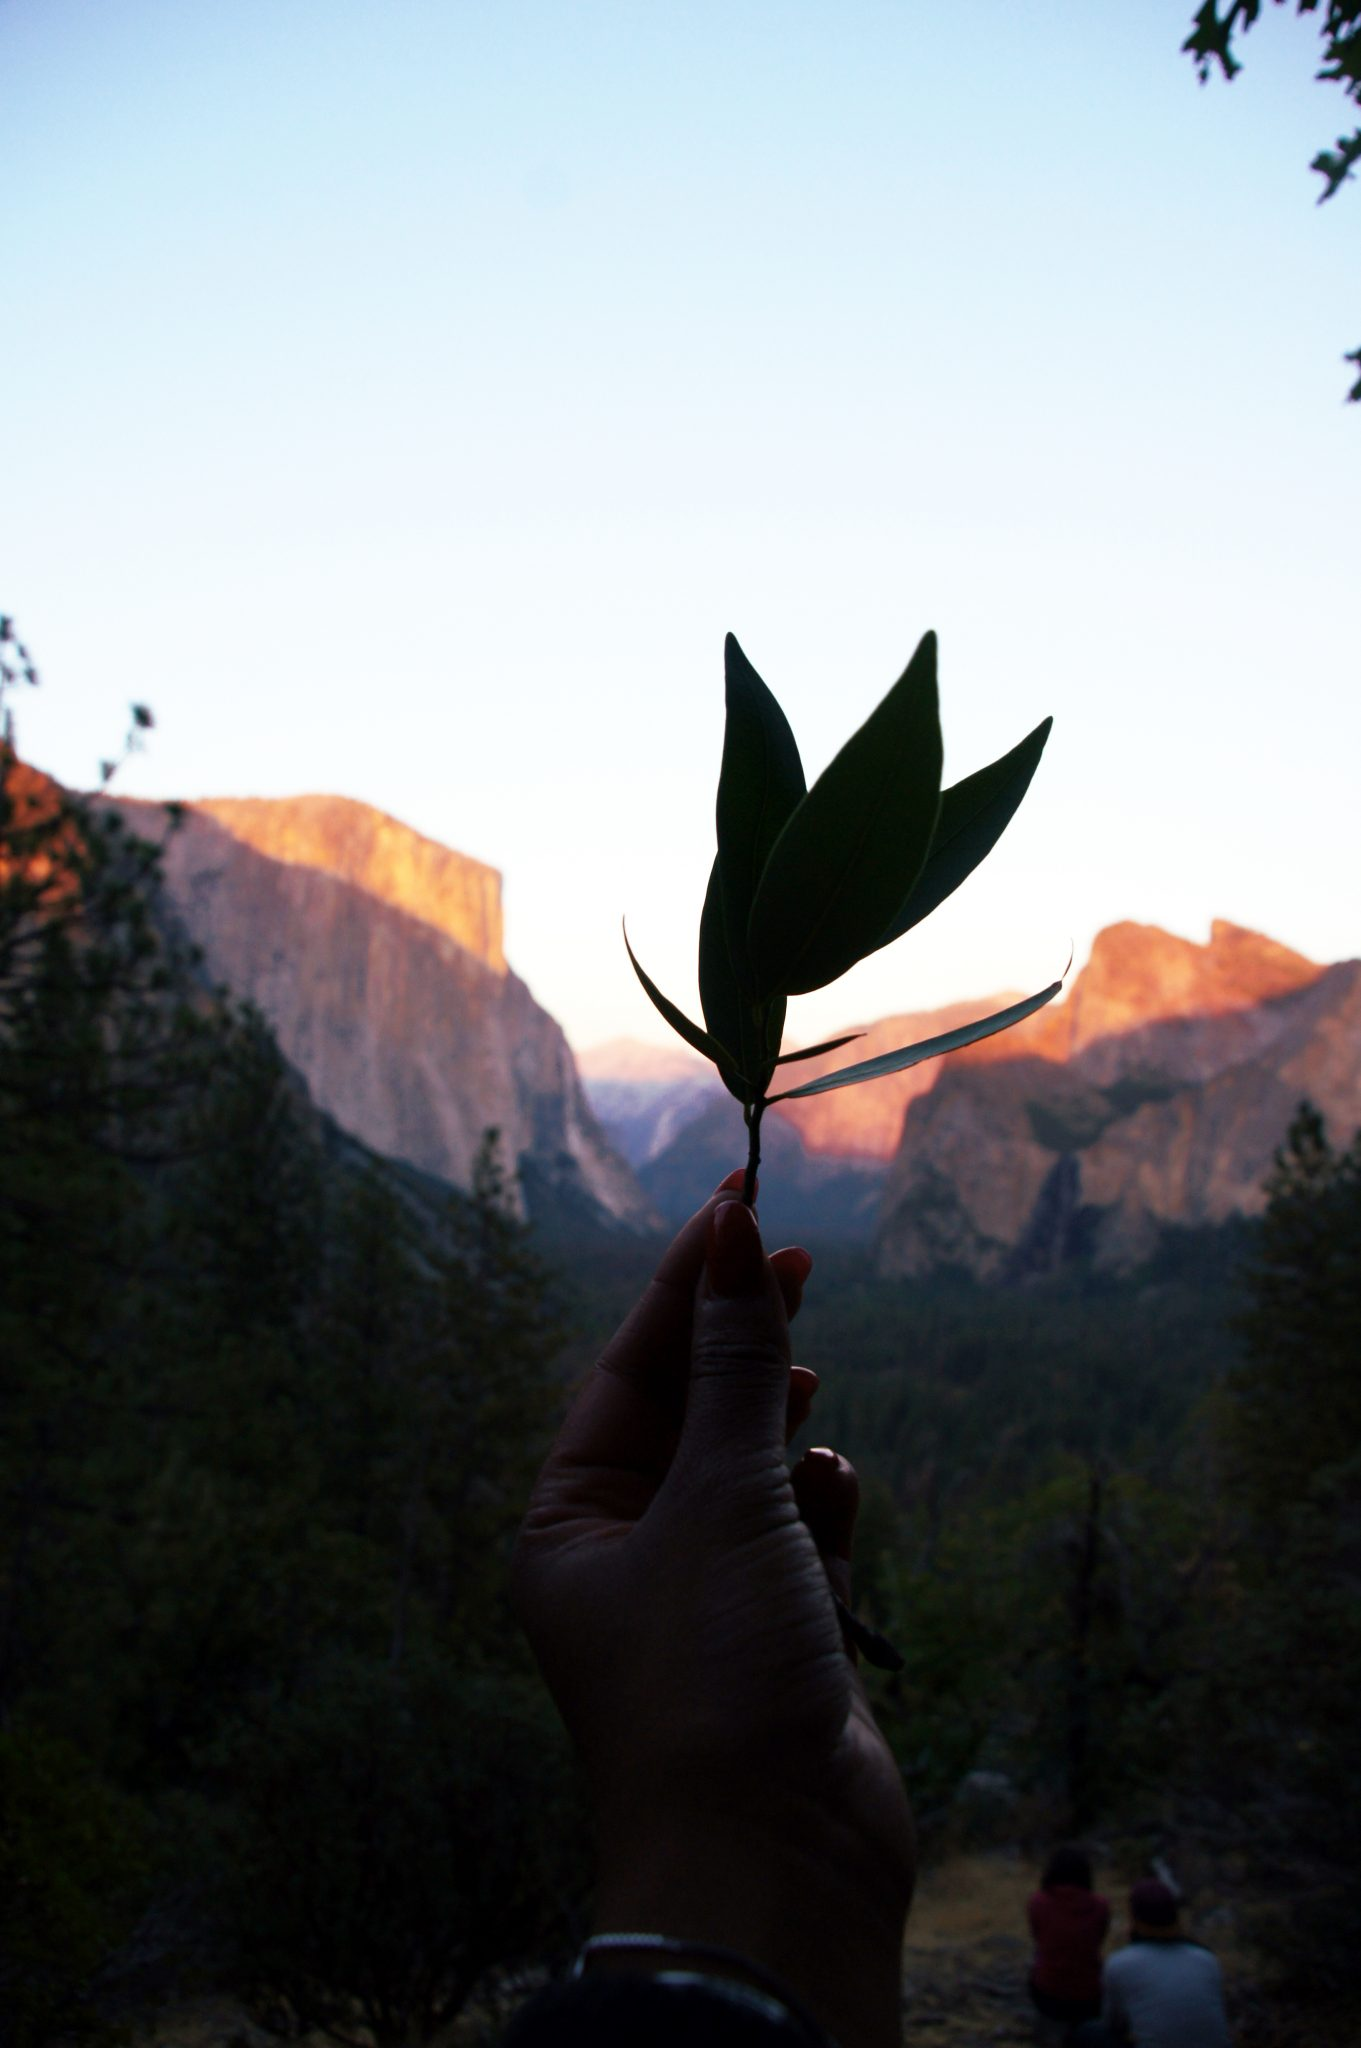 me holding up a leave in the Yosemite national park